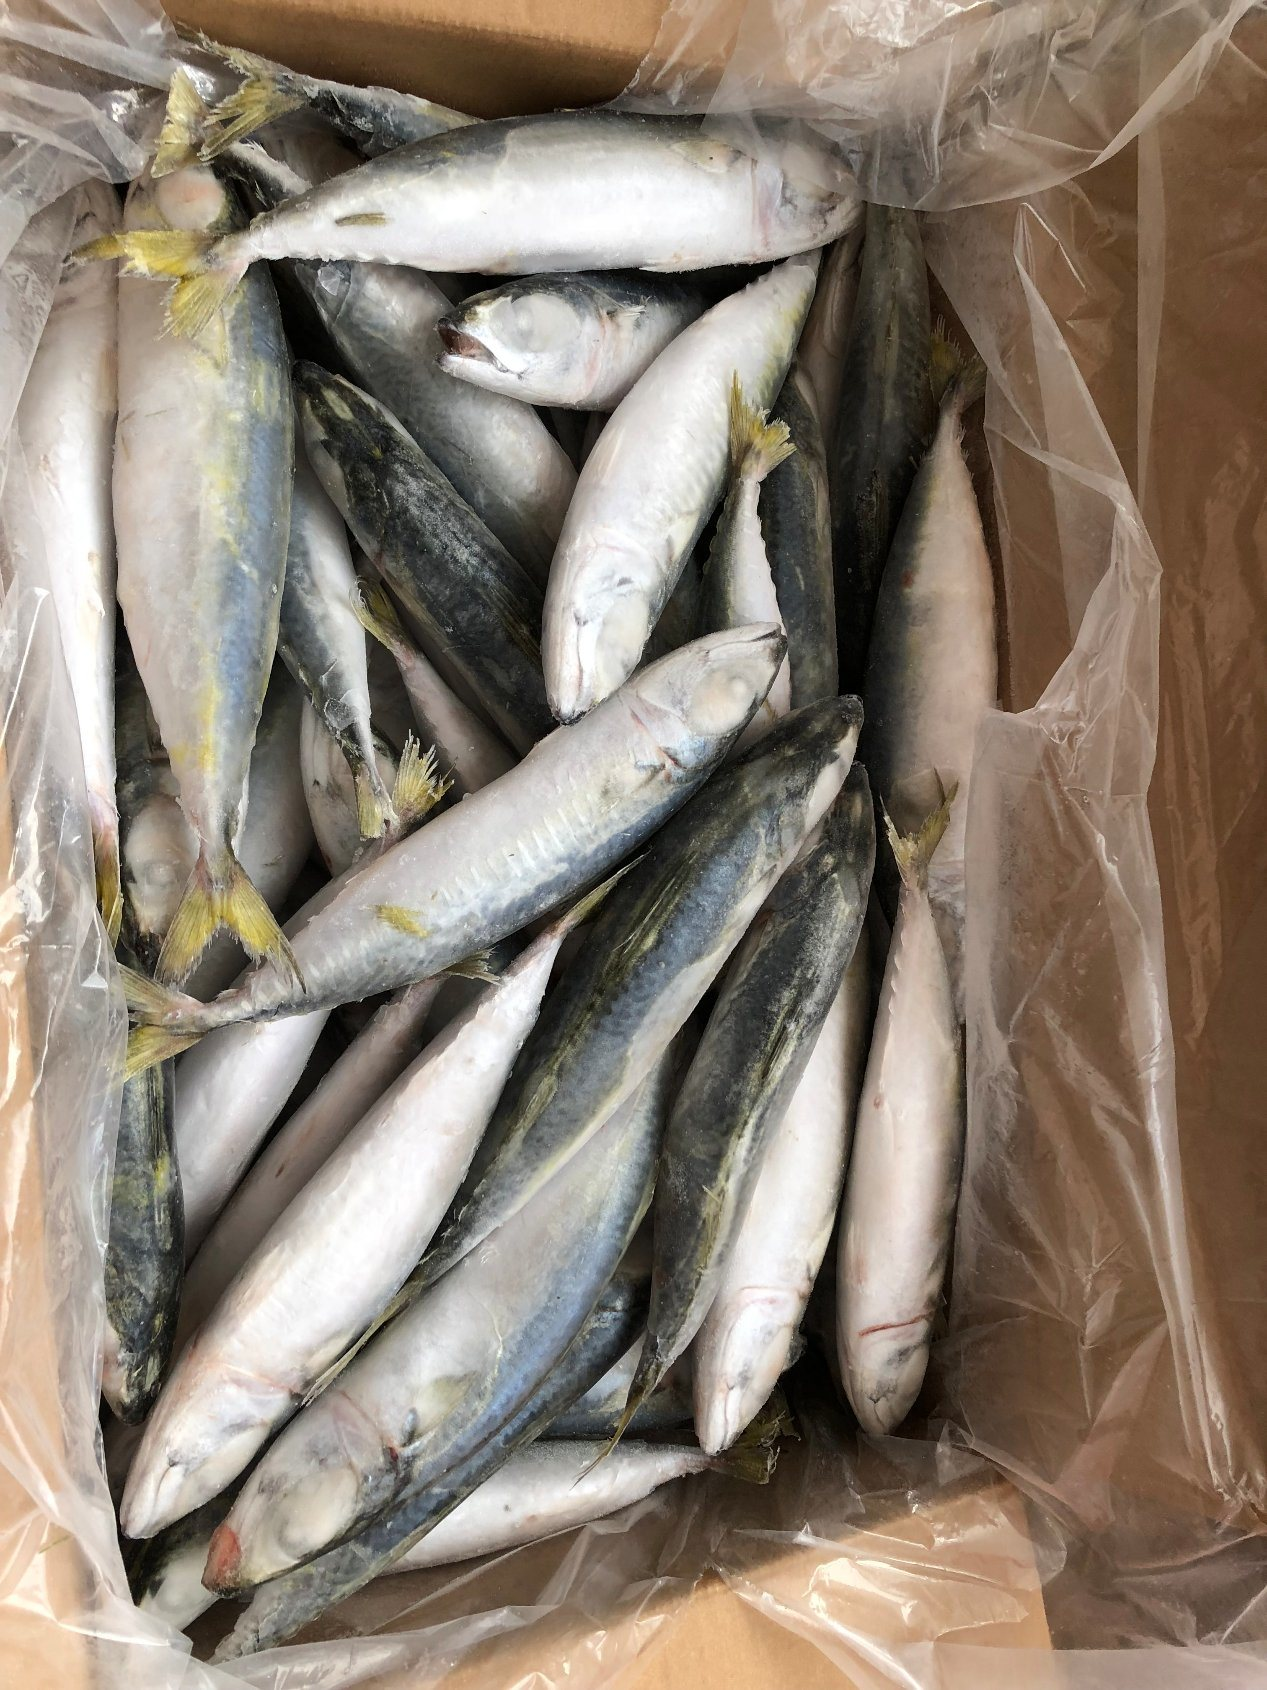 Frozen Pacific Mackerel (Scomber japonicus) , Mackerel Fish